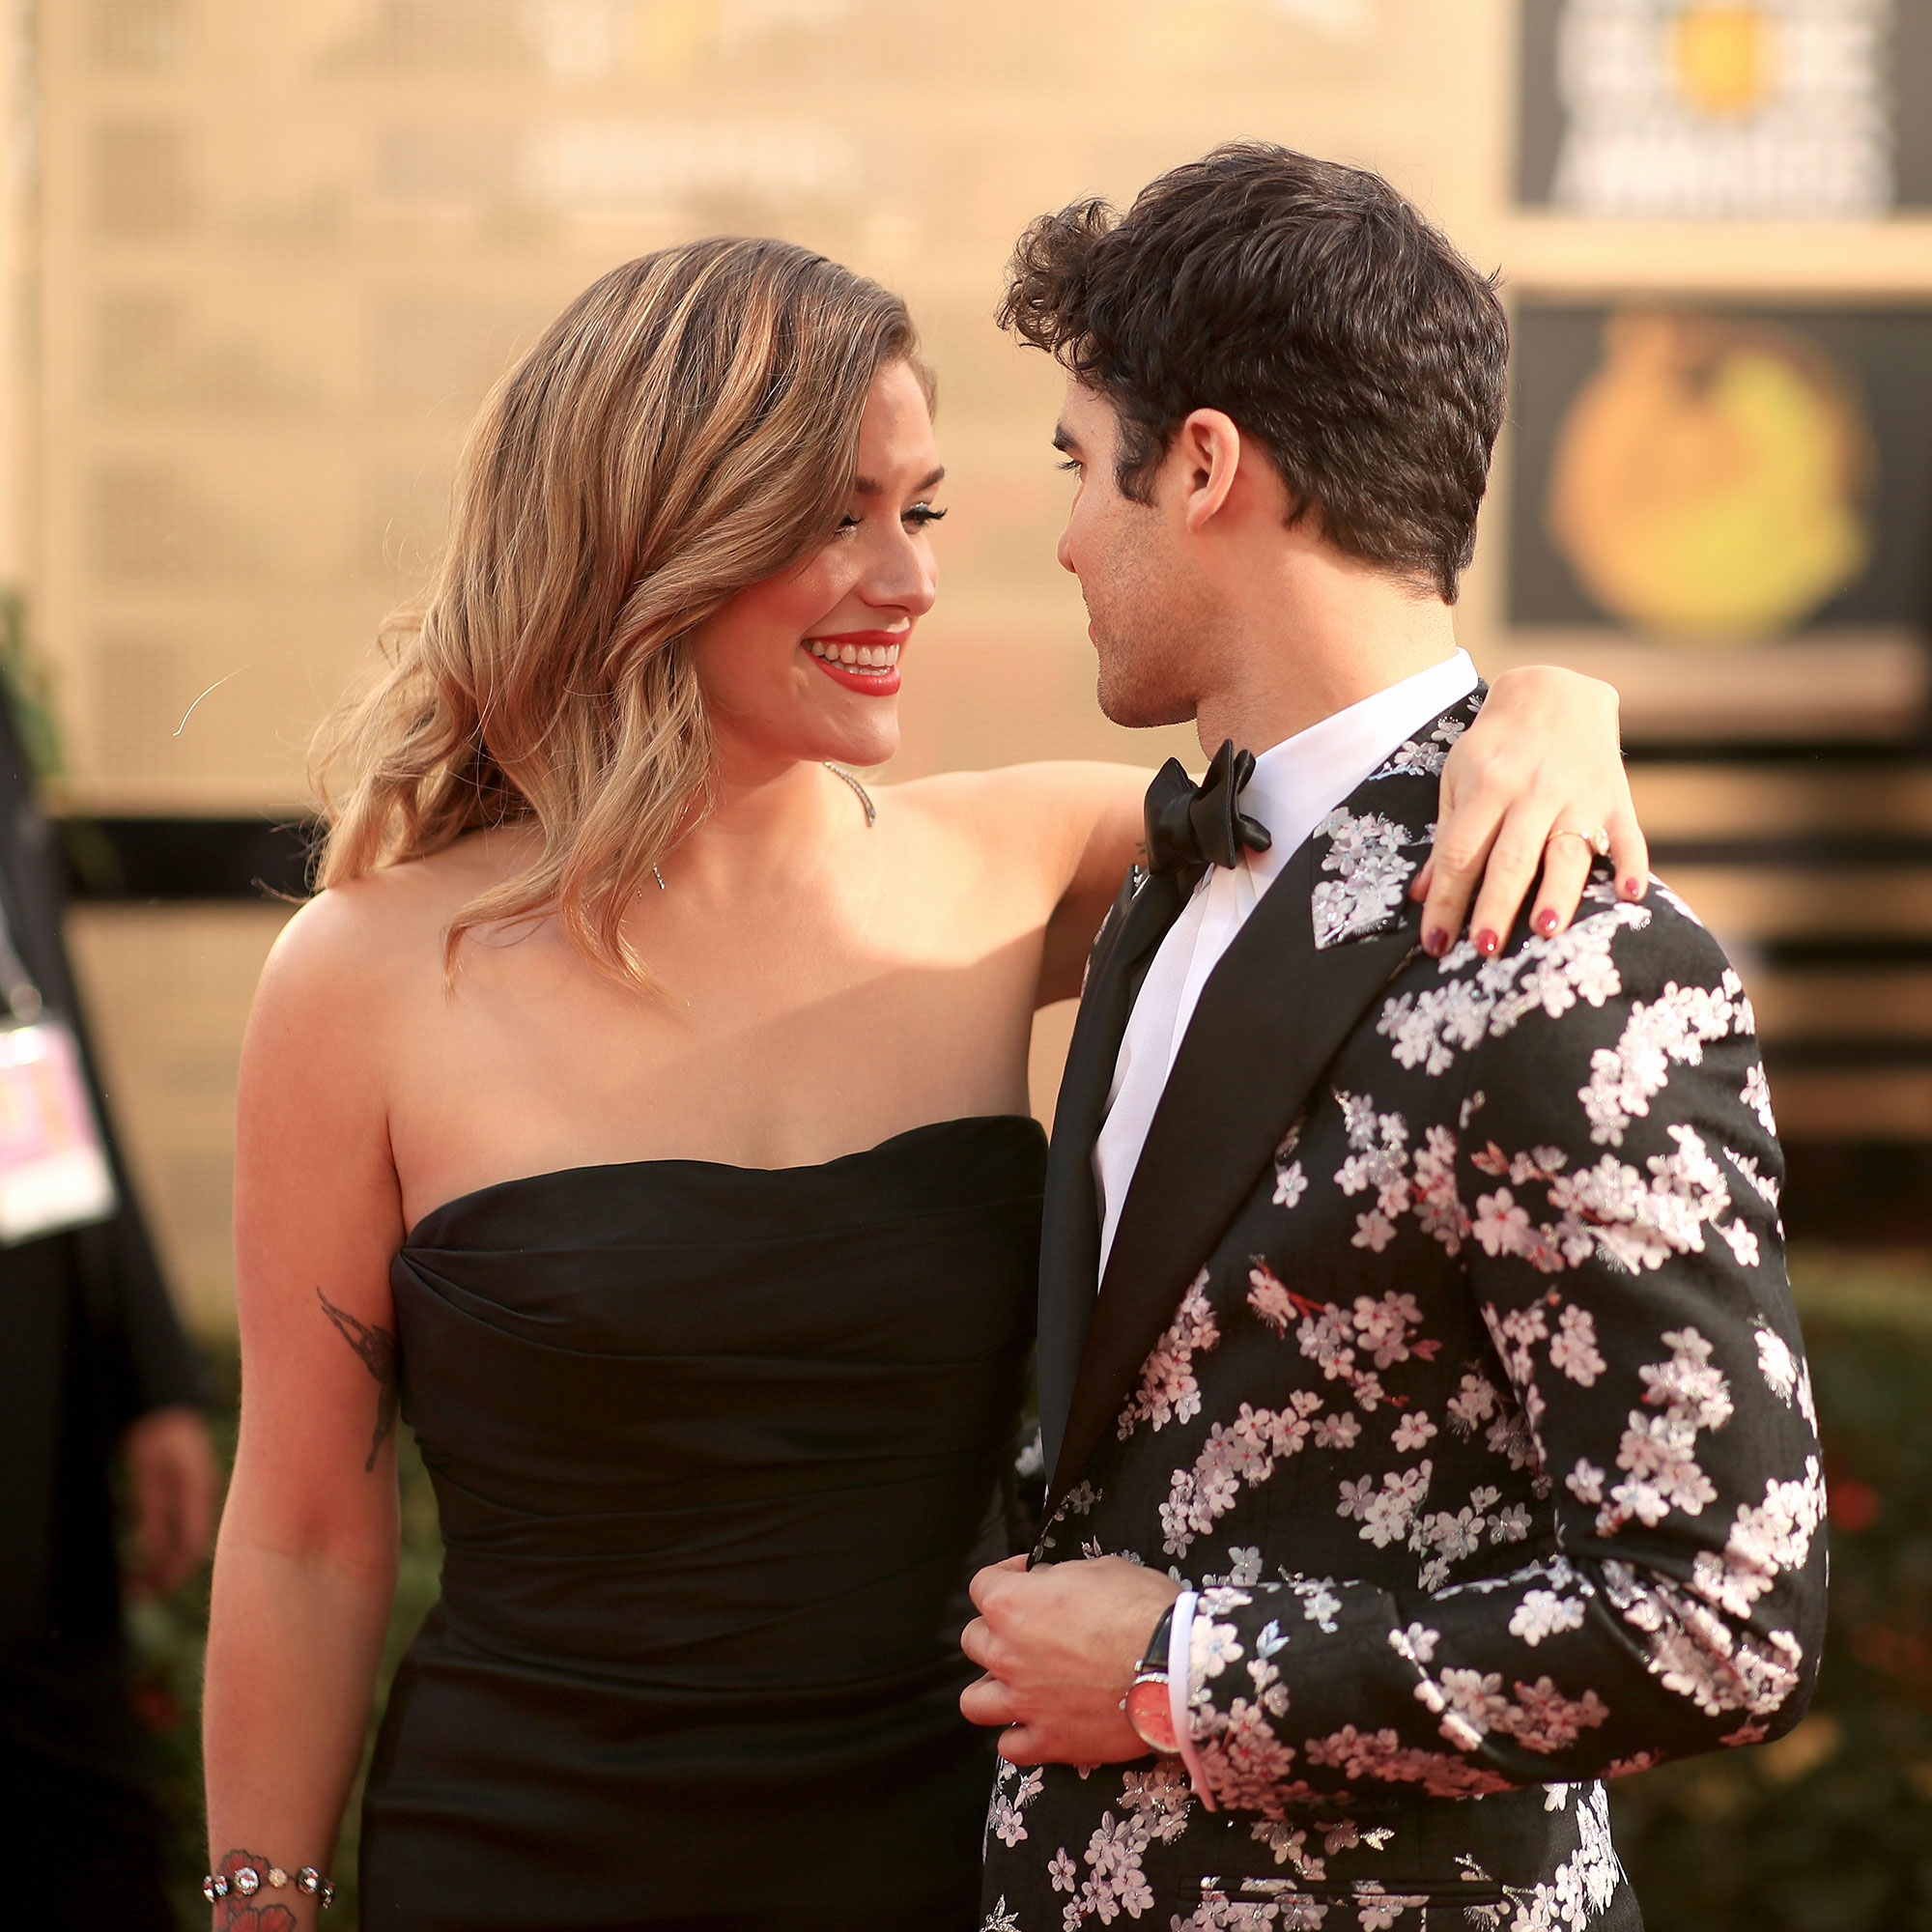 Darren Criss and Mia Swier married - Mia Swier and Darren Criss arrive to the 76th Annual Golden Globe Awards held at the Beverly Hilton Hotel on January 6, 2019.